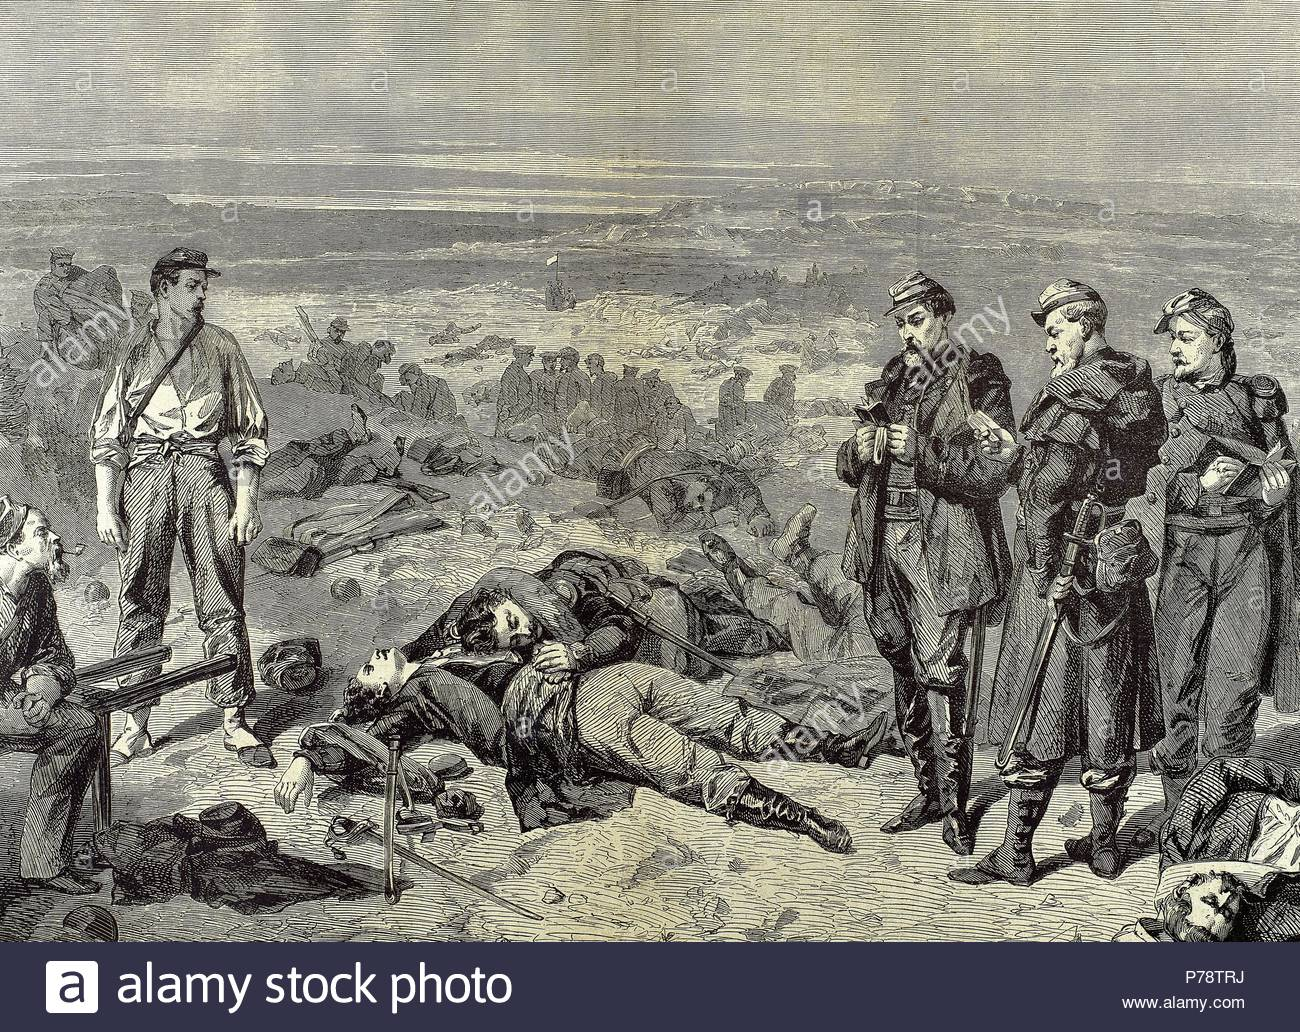 October 1853-Febrary 1856. Conflict in which Russian lost to an alliance of  France, Britain, the Ottoman Empire and Sardinia. Engraving by W. Thomas.